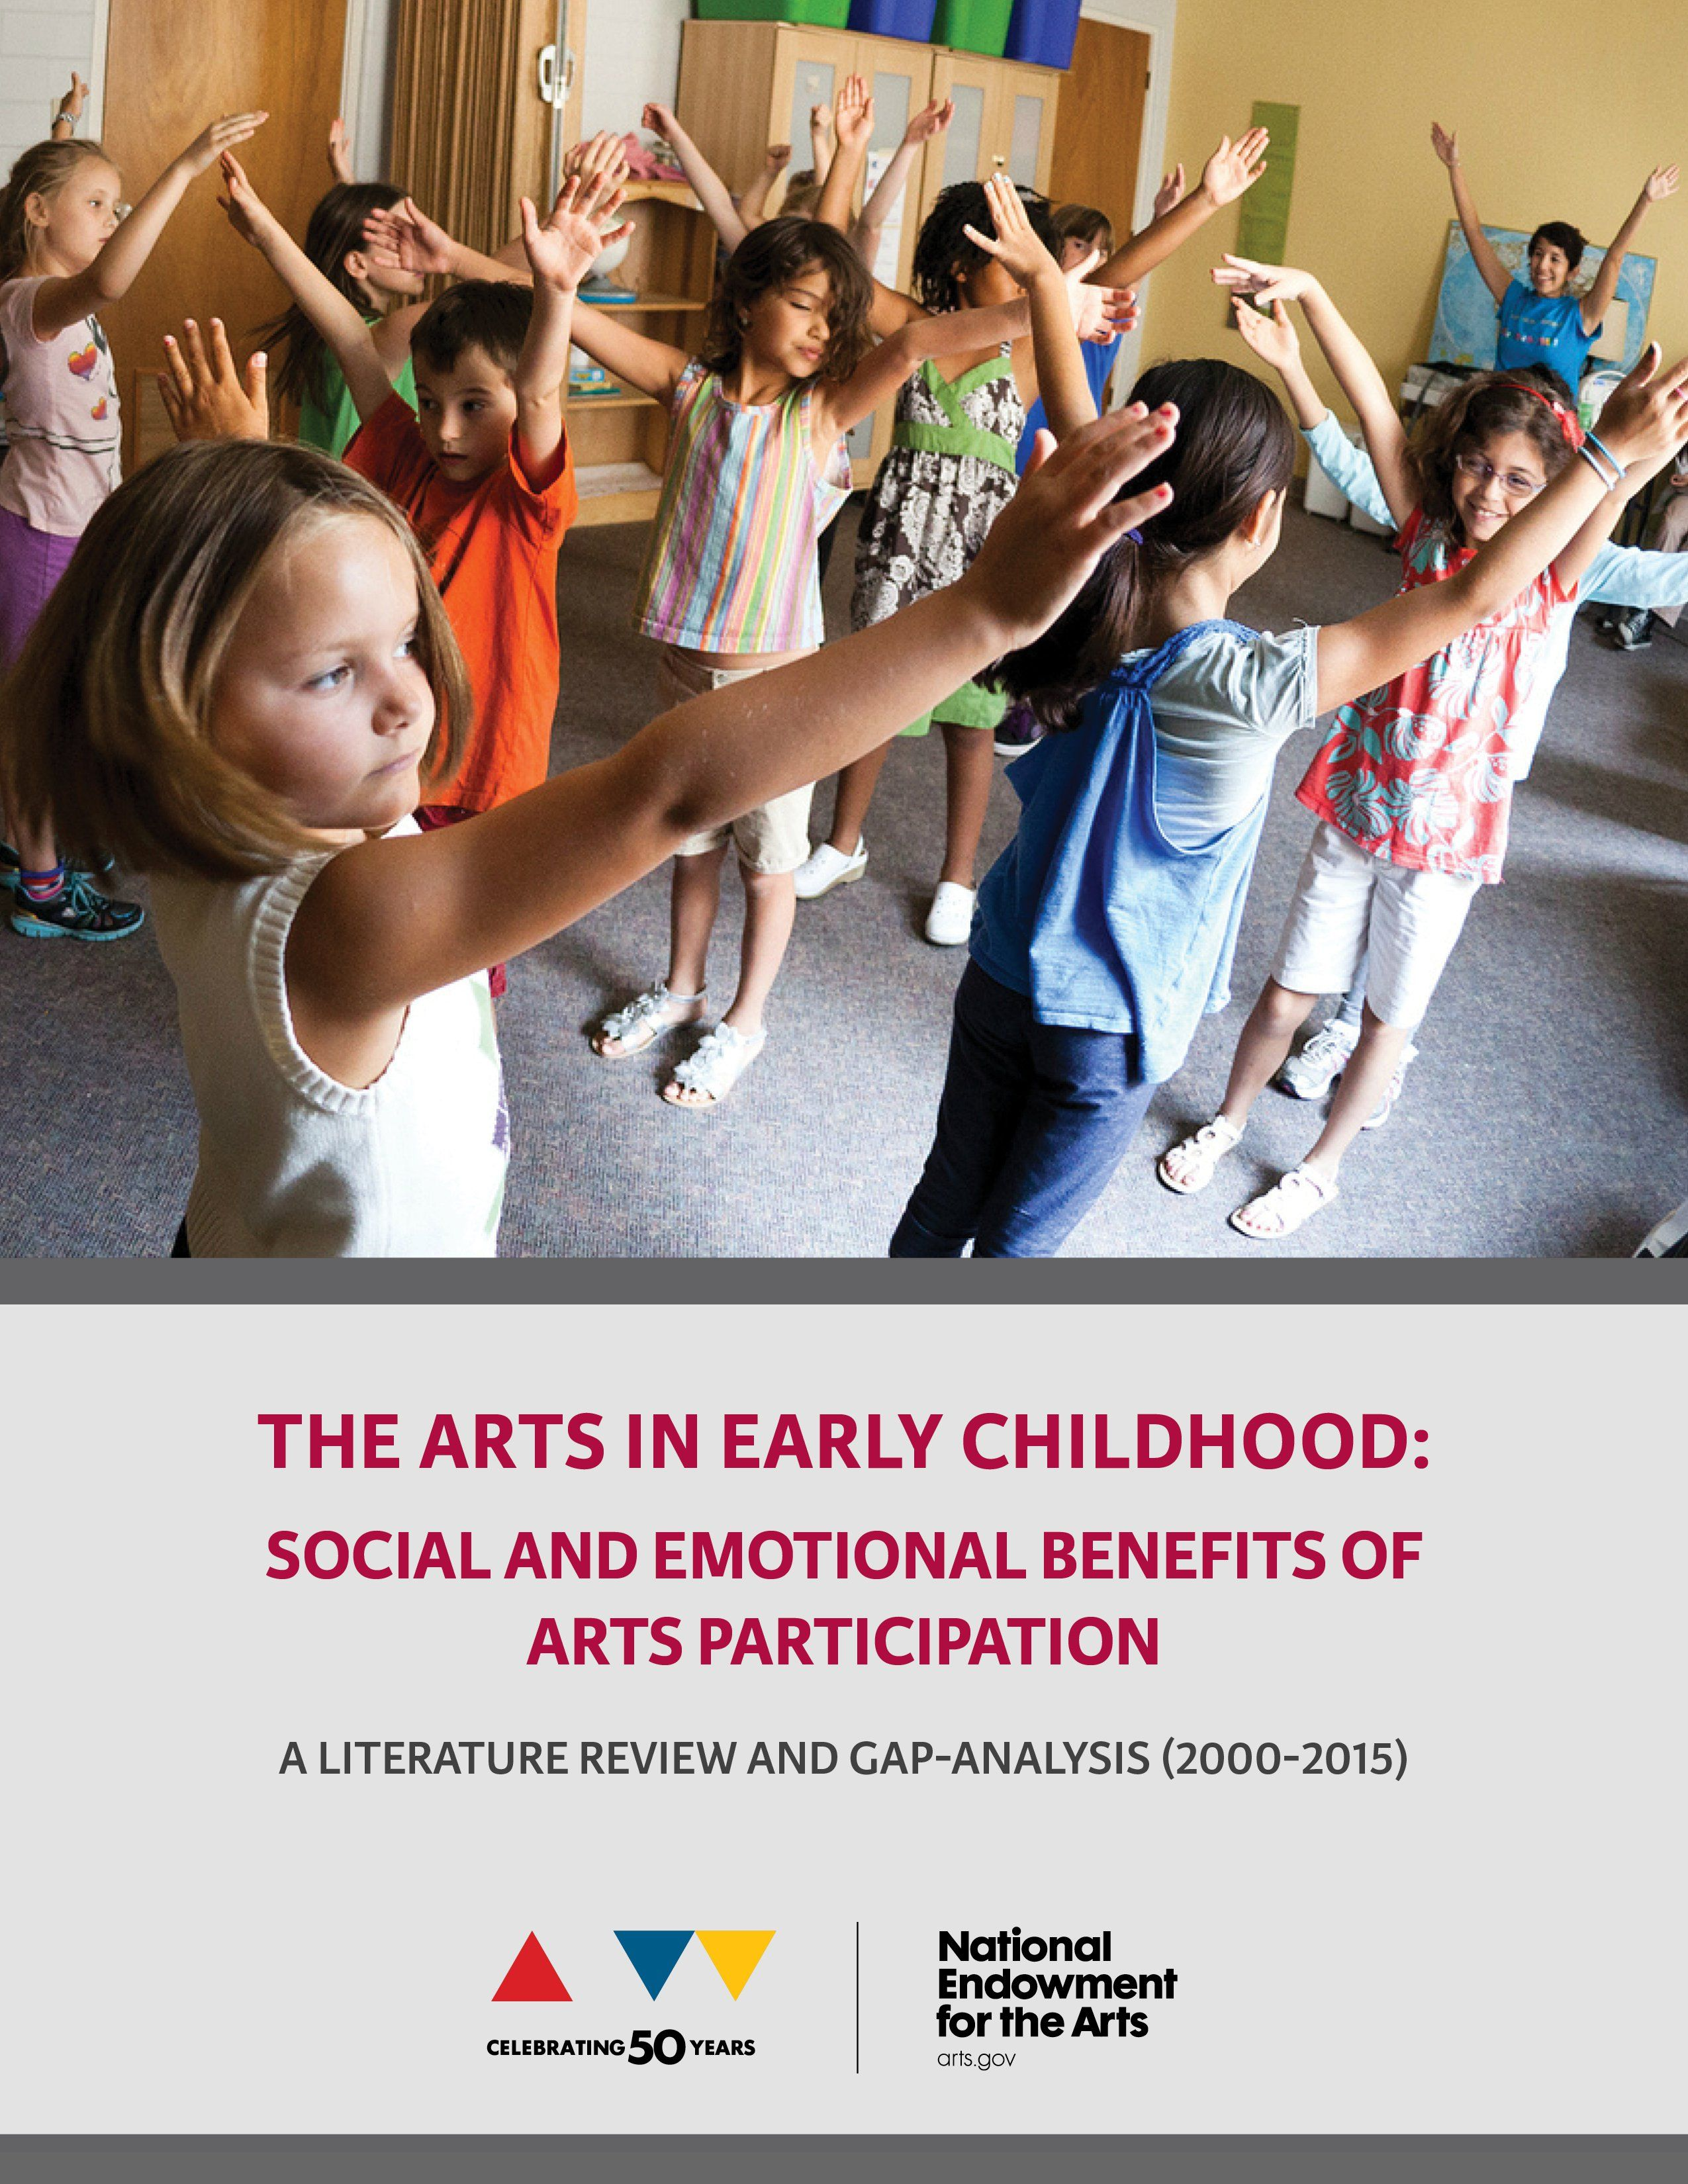 Arts Help Development of Social, Emotional Skills in Early